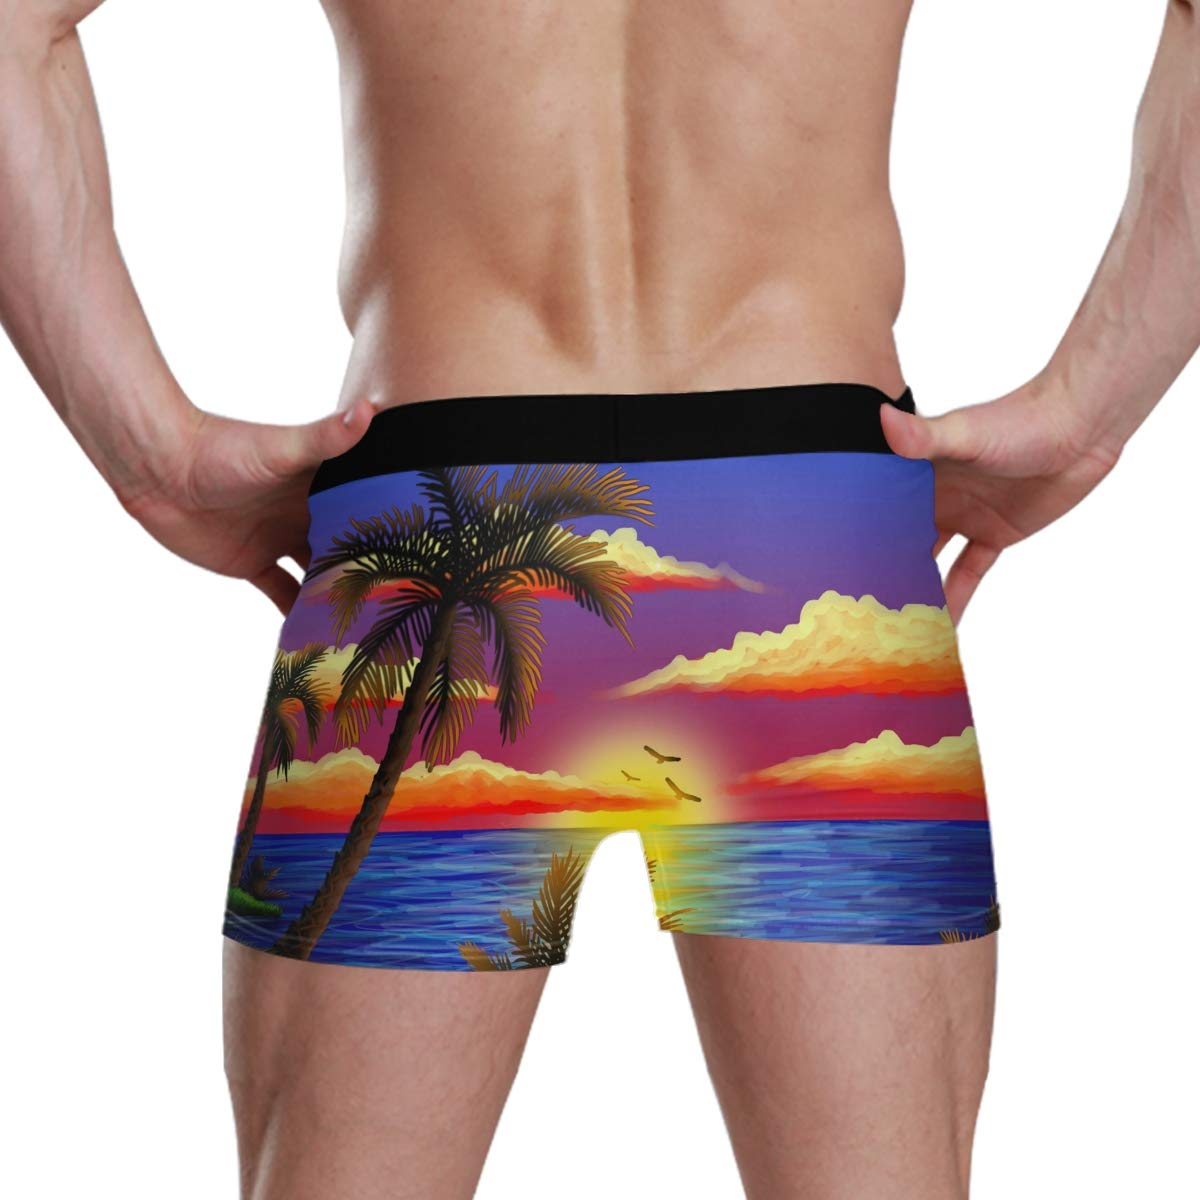 Drawings of Scenery Sunset Mens Boxer Briefs Underwear Comfortable Breathable Tagless Short Leg Boxers Brief